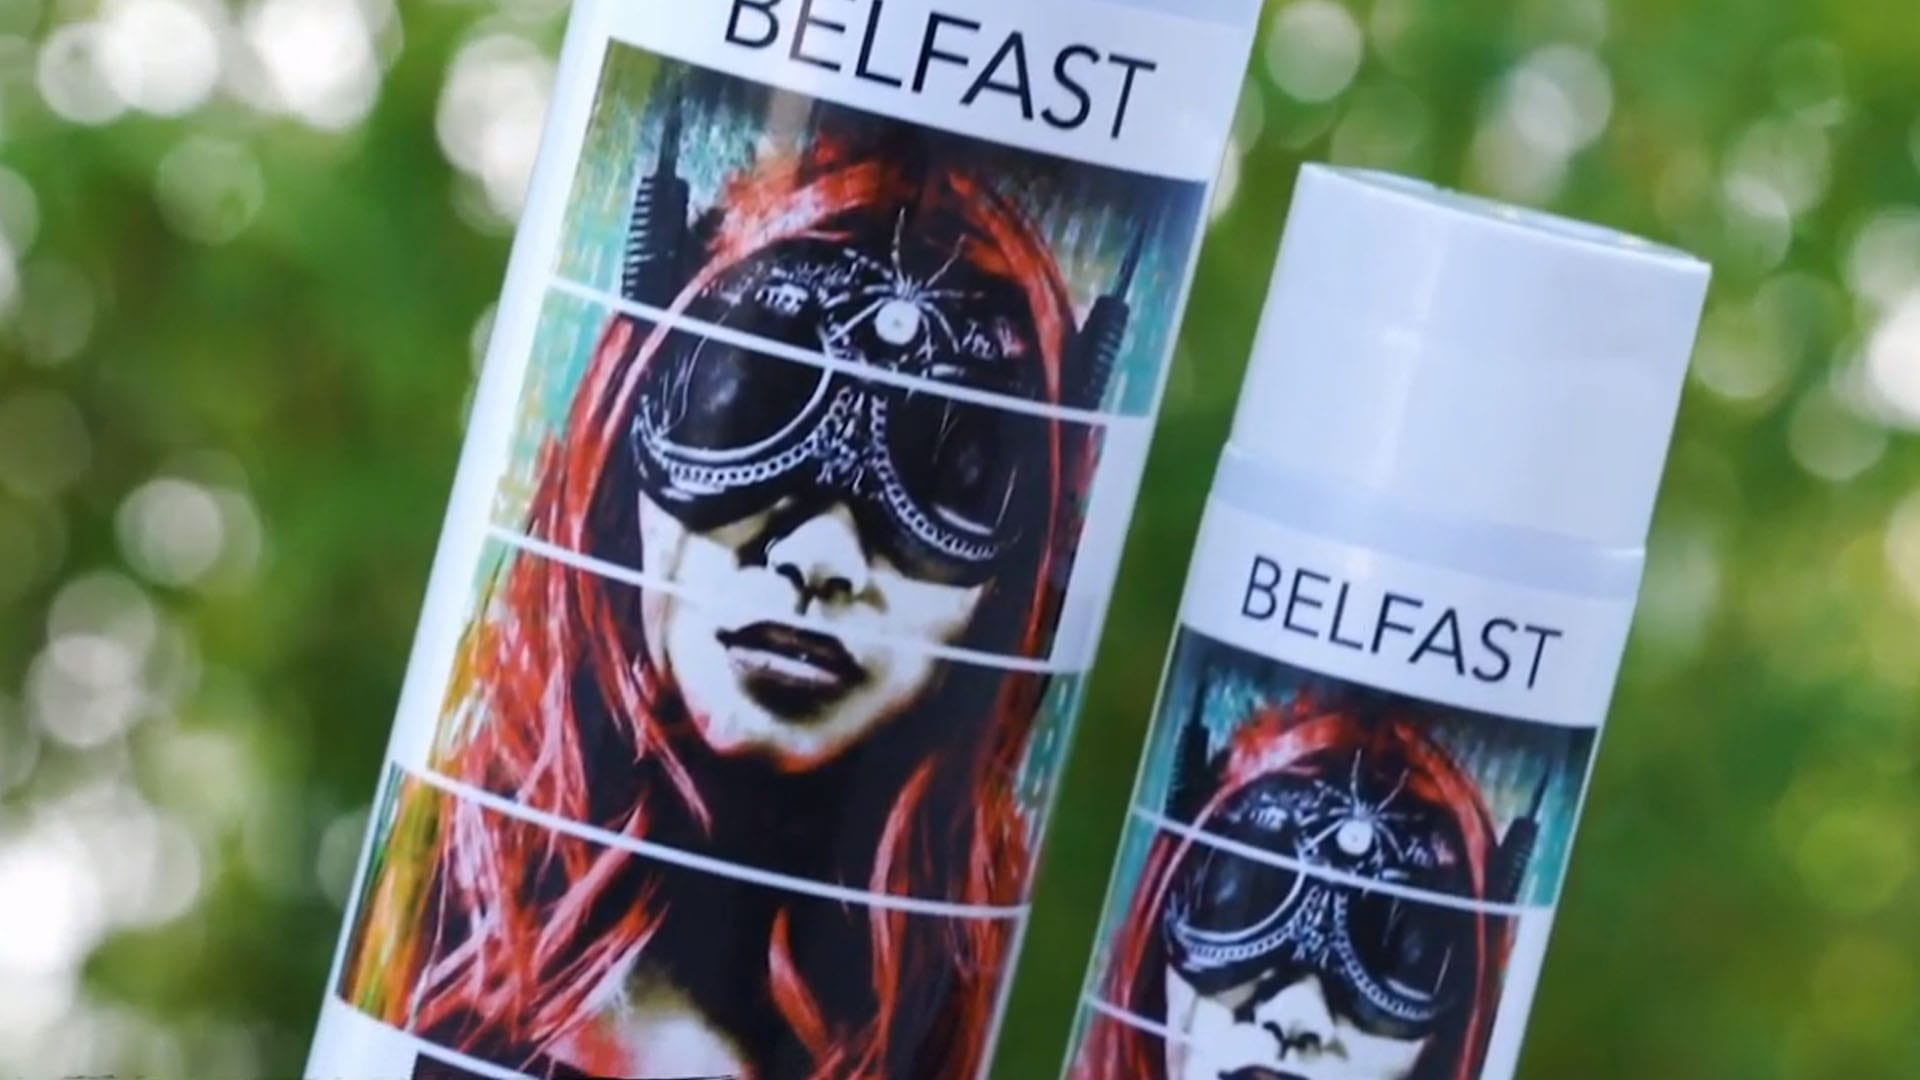 Pulp-Riot-Belfast-Toning-Conditioner-Video-Poster-MMC-Style